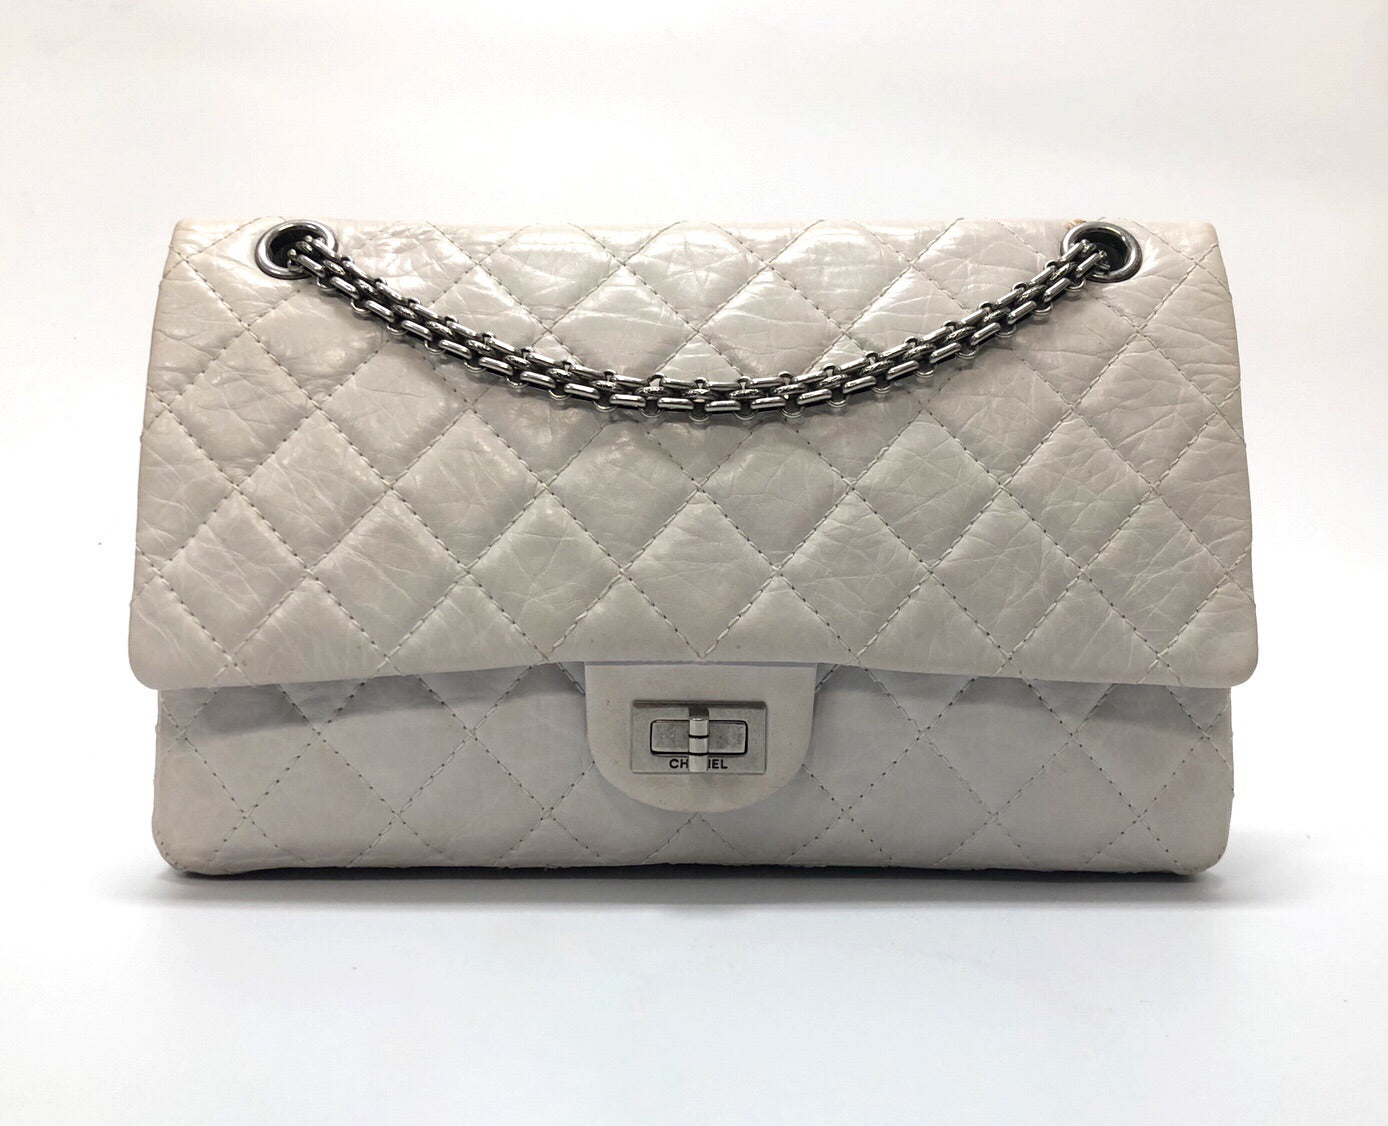 Chanel Aged White Calfskin 50th Anniversary Reissue Bag